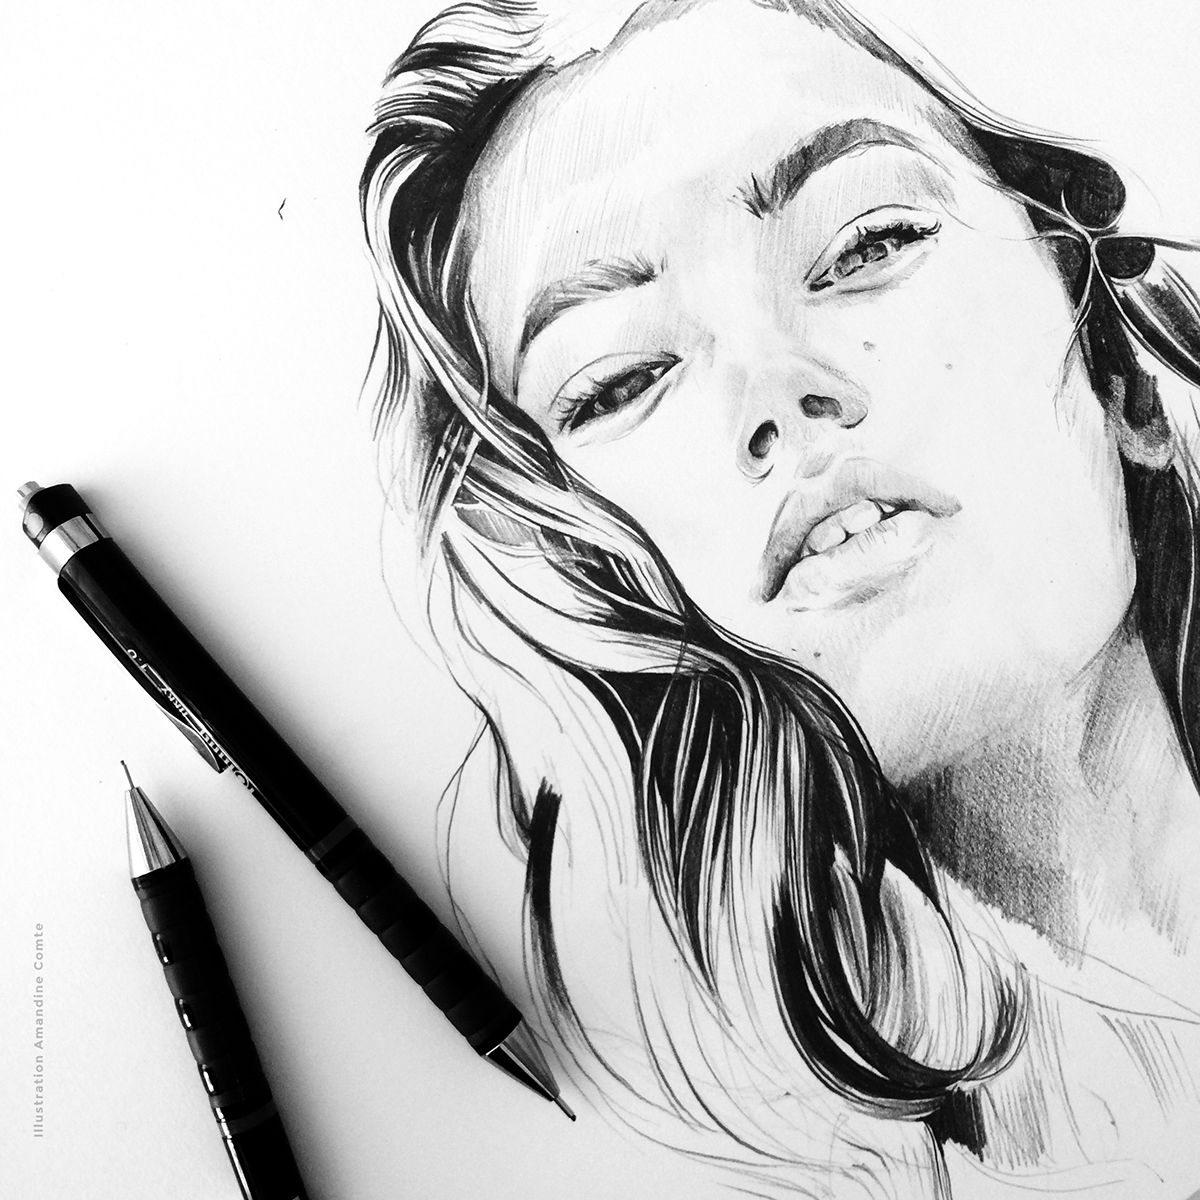 Ink & Pencil #5 on Behance